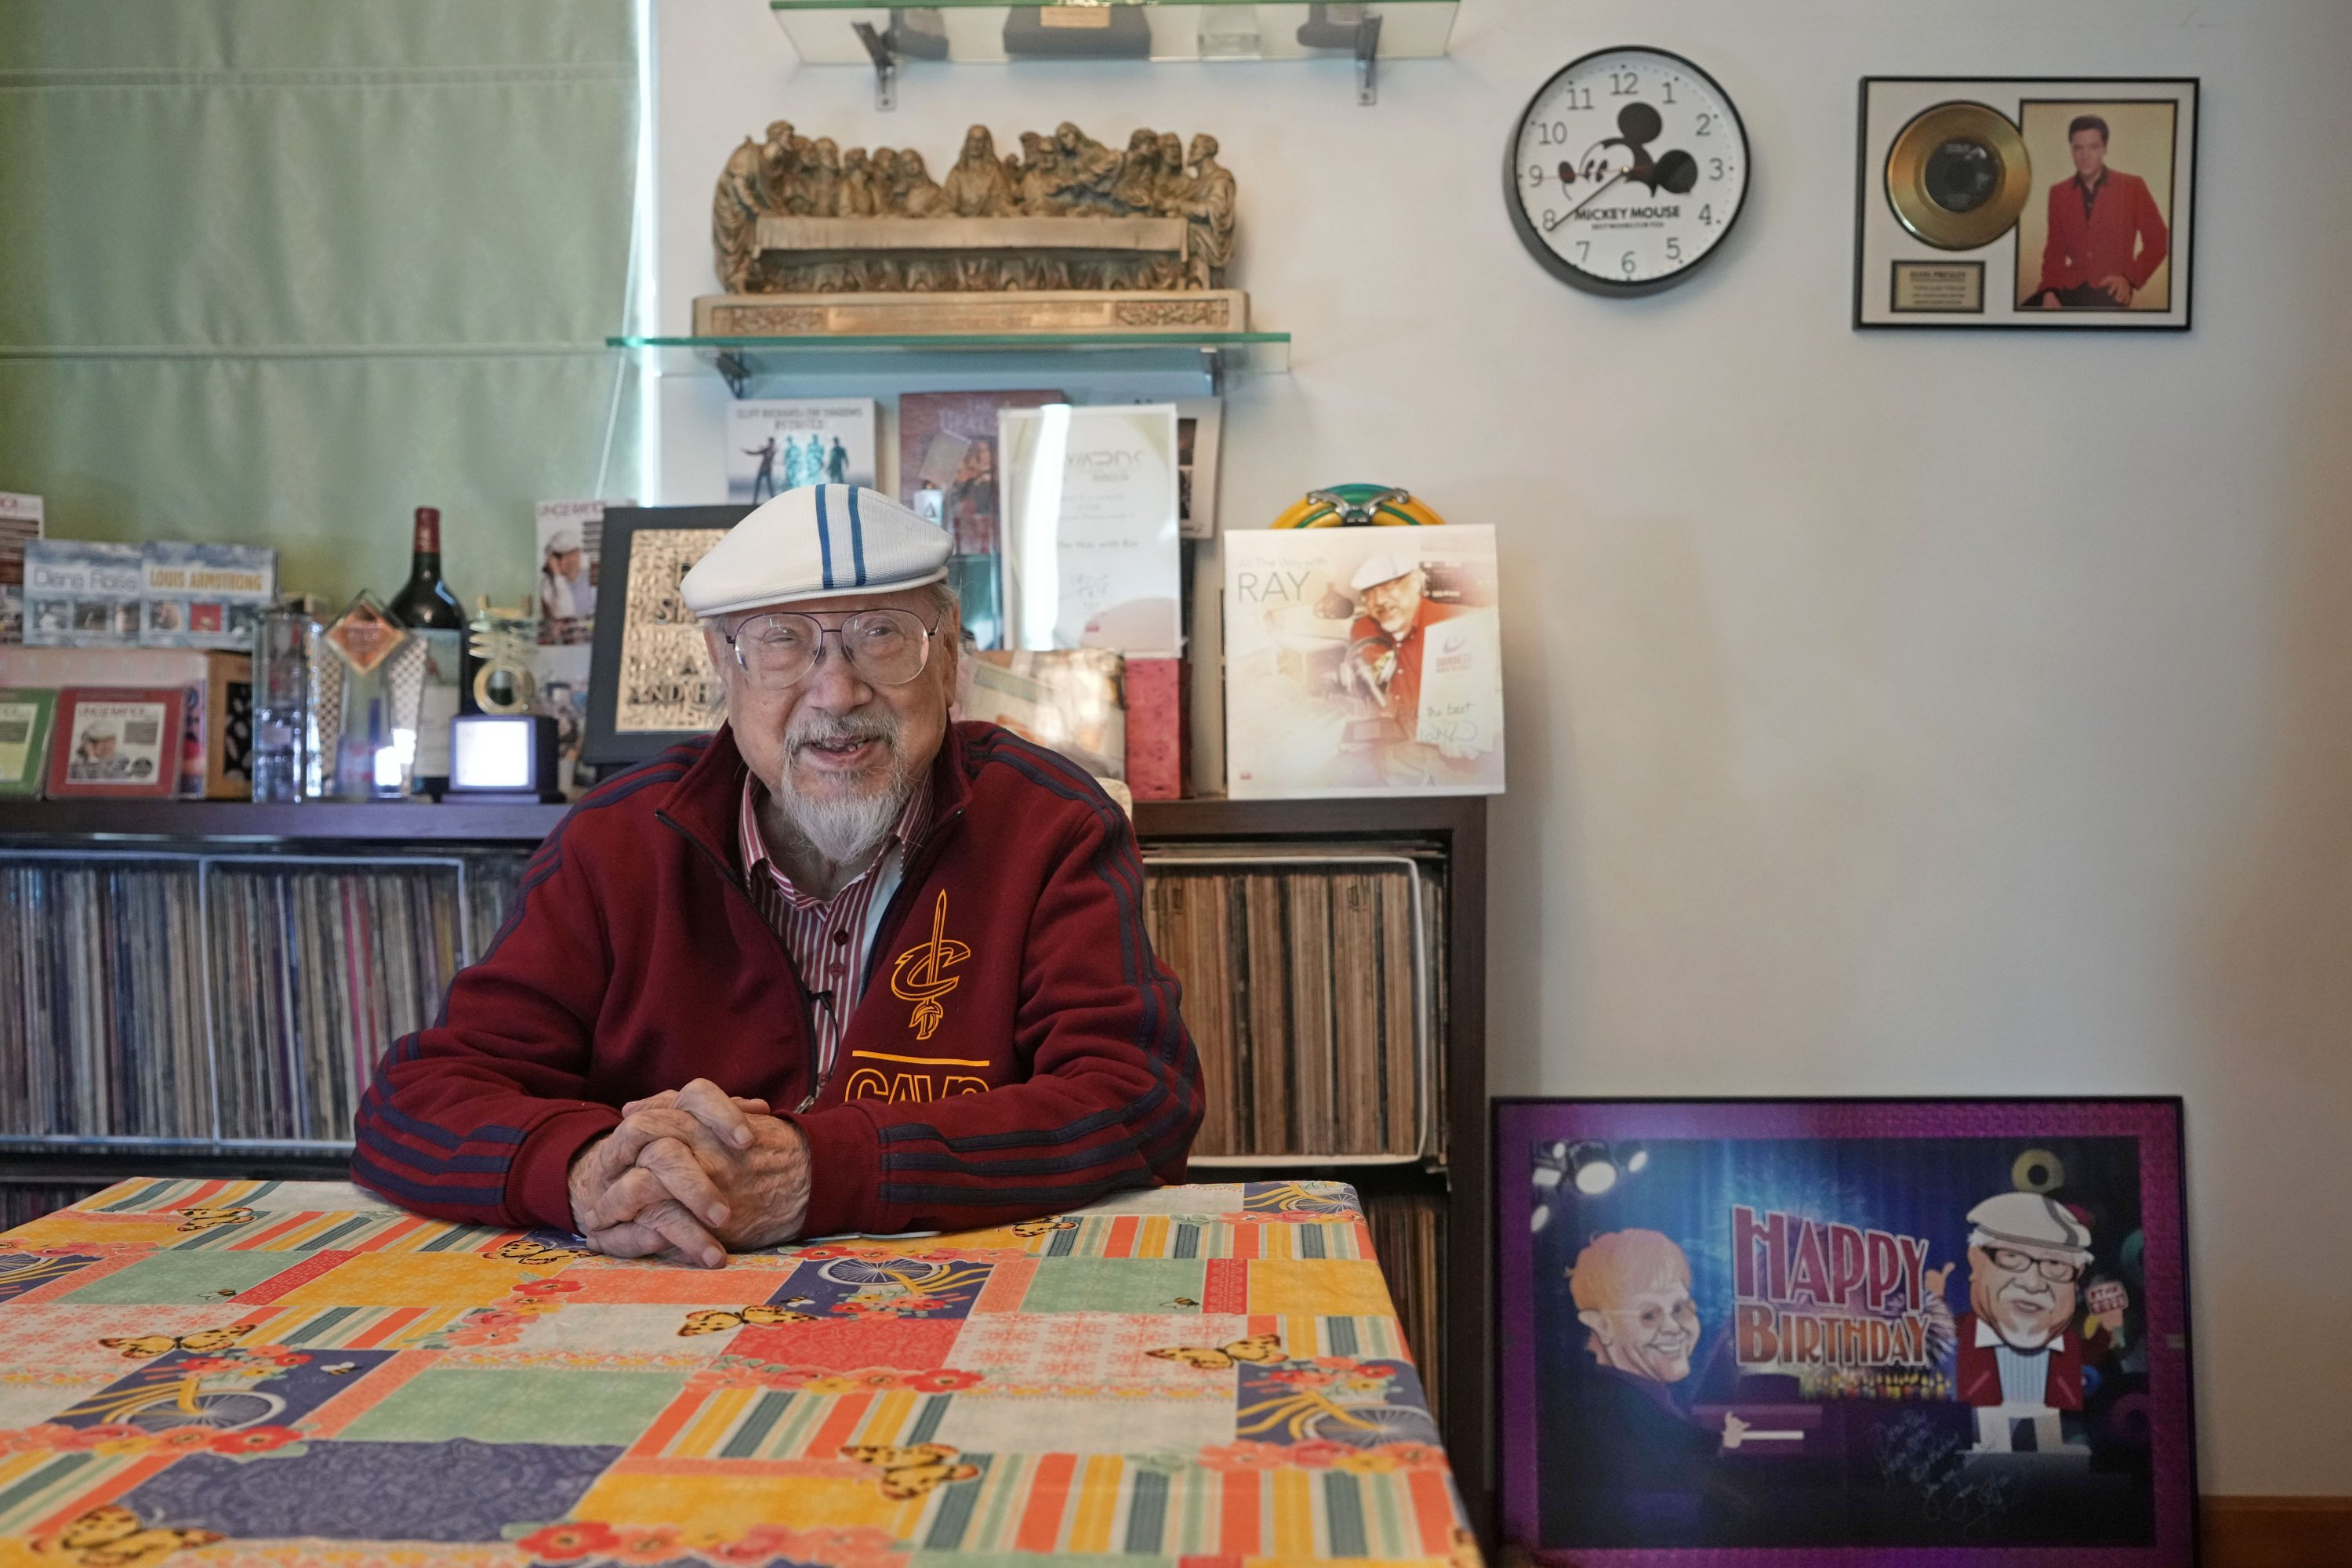 Ray Cordeiro, Hong Kong's oldest DJ, speaks during an interview at his home in Hong Kong, May 27, 2021. (AP Photo)